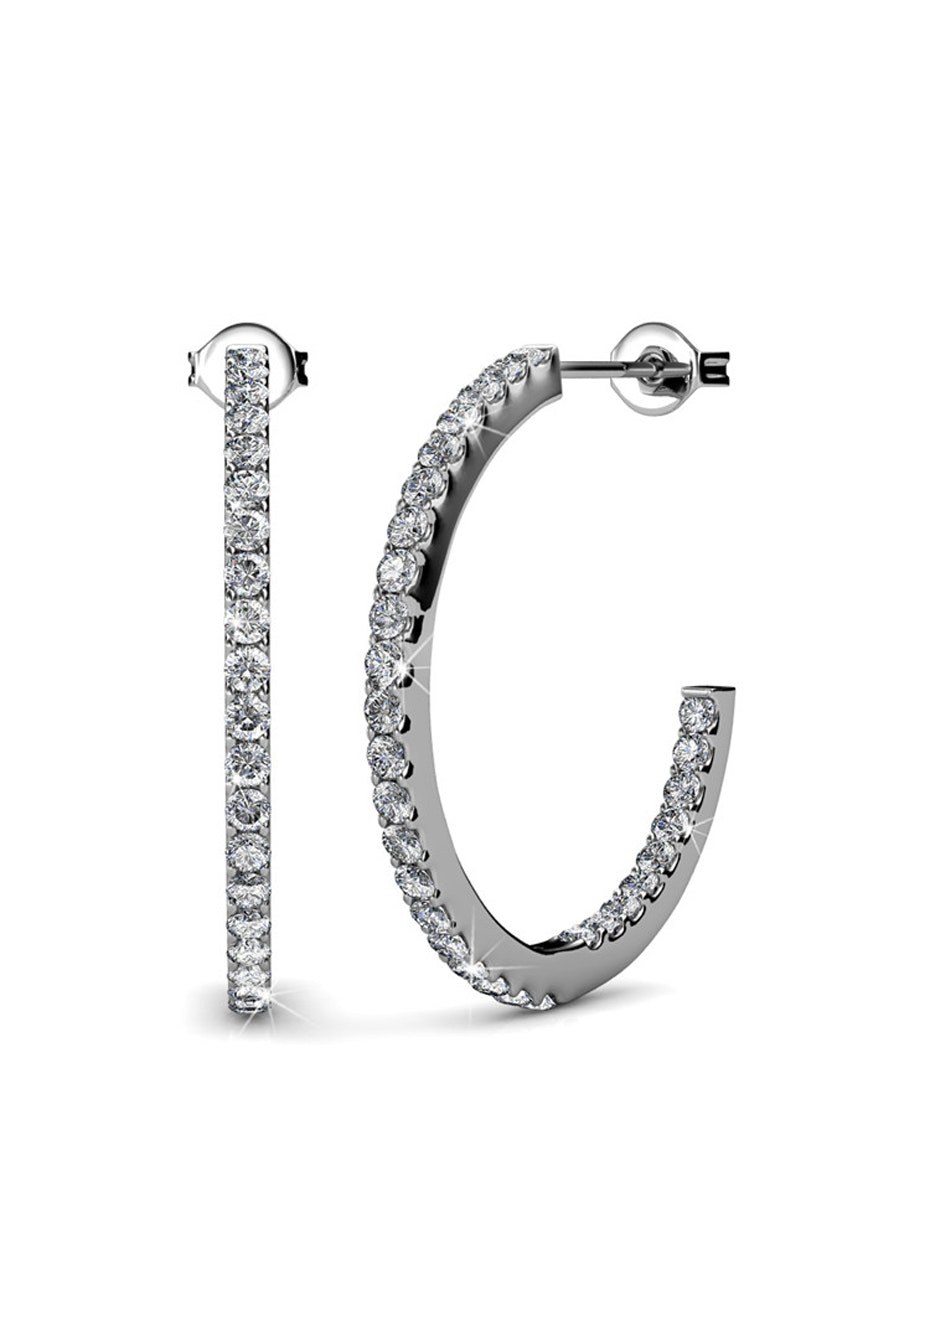 Hoop White Gold Earrings Embellished with Crystals from Swarovski